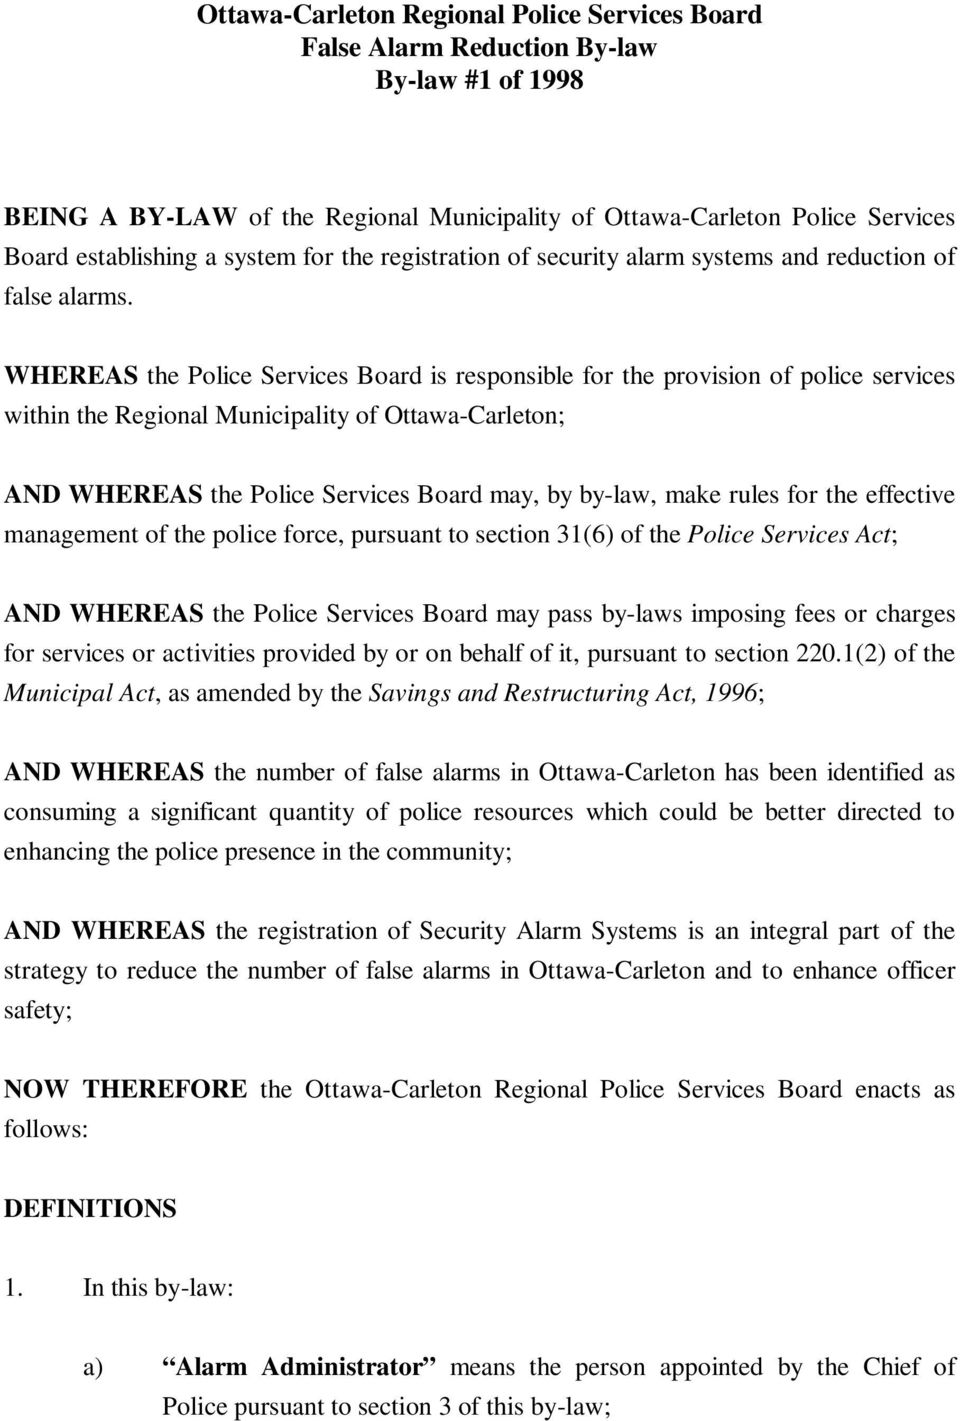 WHEREAS the Police Services Board is responsible for the provision of police services within the Regional Municipality of Ottawa-Carleton; AND WHEREAS the Police Services Board may, by by-law, make